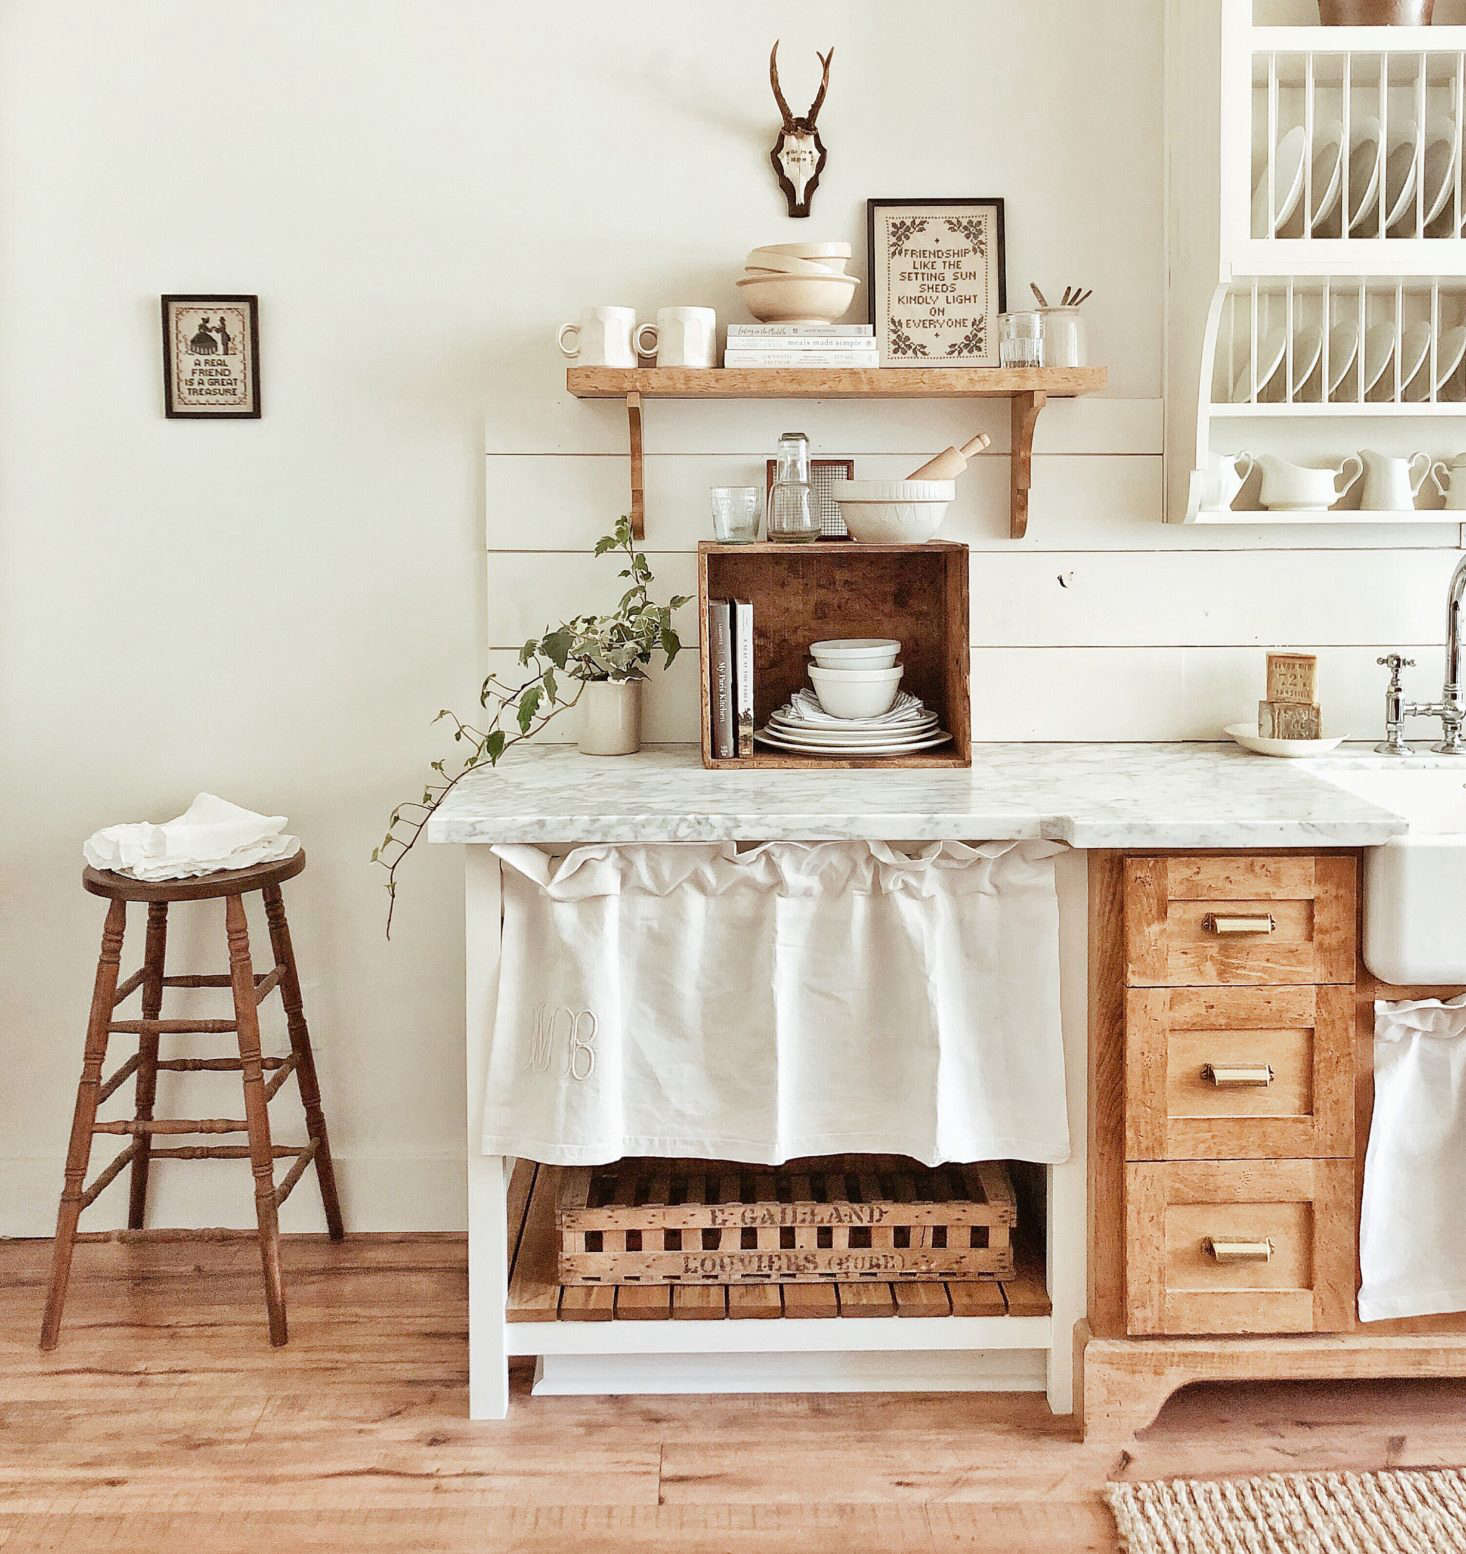 And, drumroll pleasePWhitetail Farmhouse was crowned the winner of the Best Kitchen Organization category of the  Considered Design Awards. Learn more about the project inA Closer Look at Whitetail Farmhouse, This Year's Best Kitchen Organization Project.